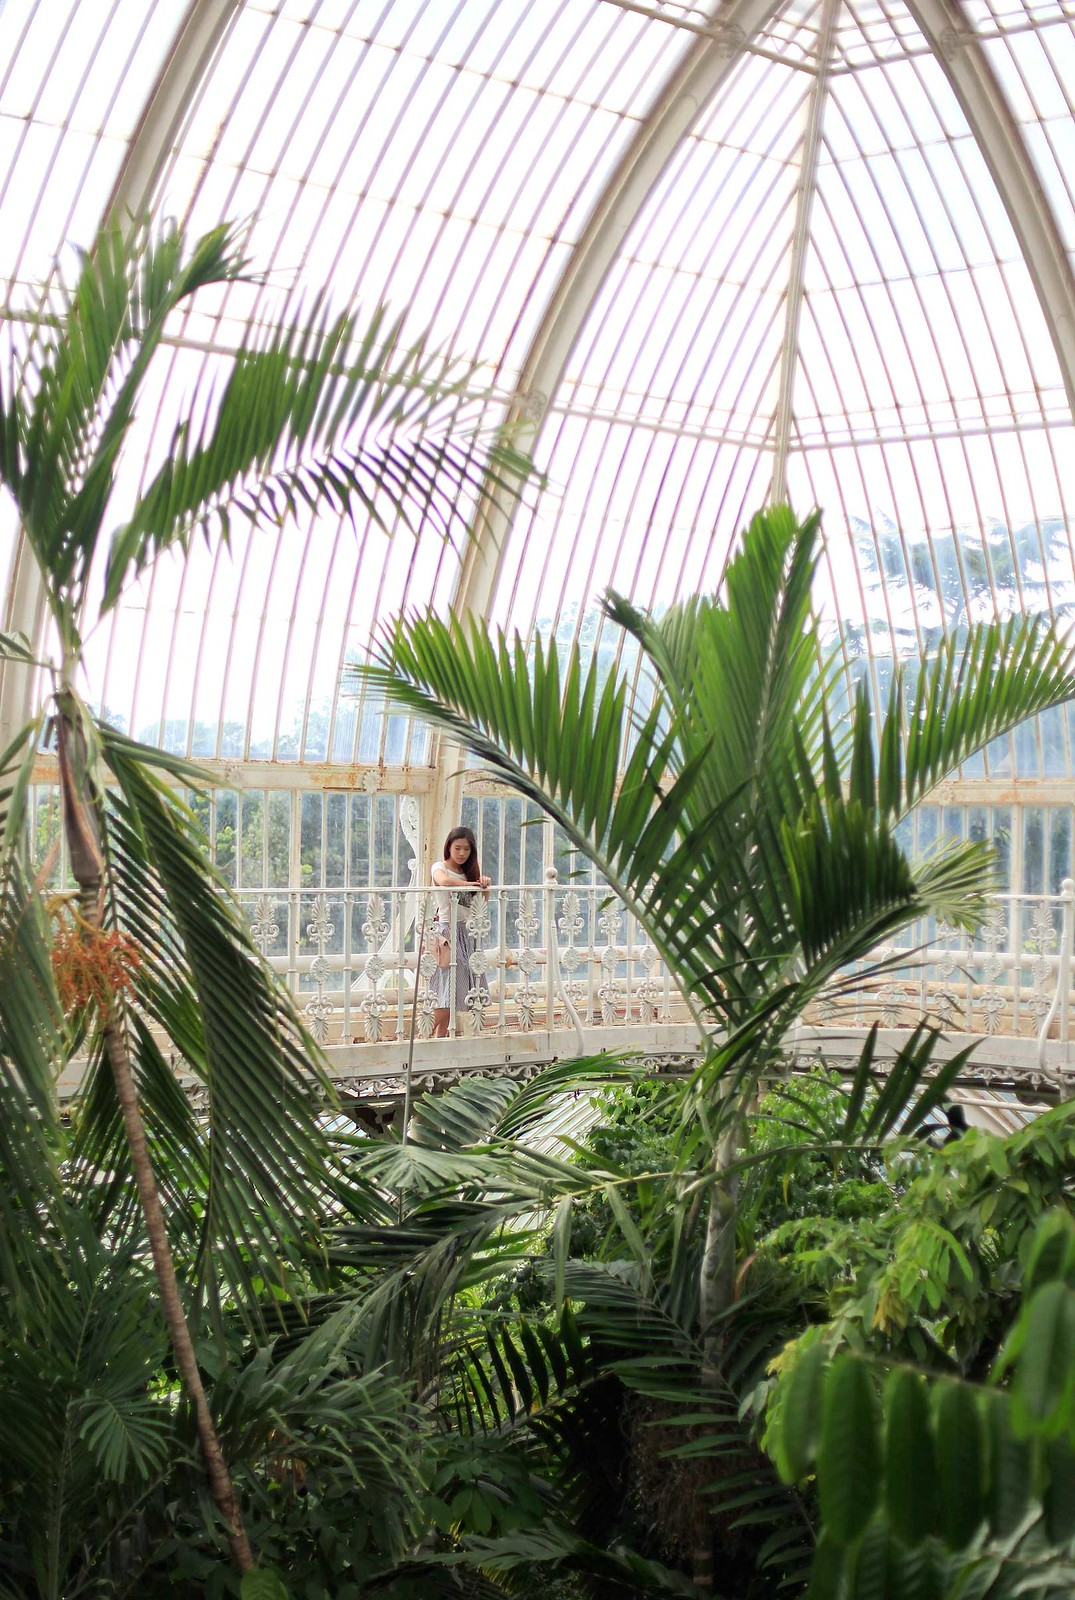 kew-gardens-greenhouse-from-above